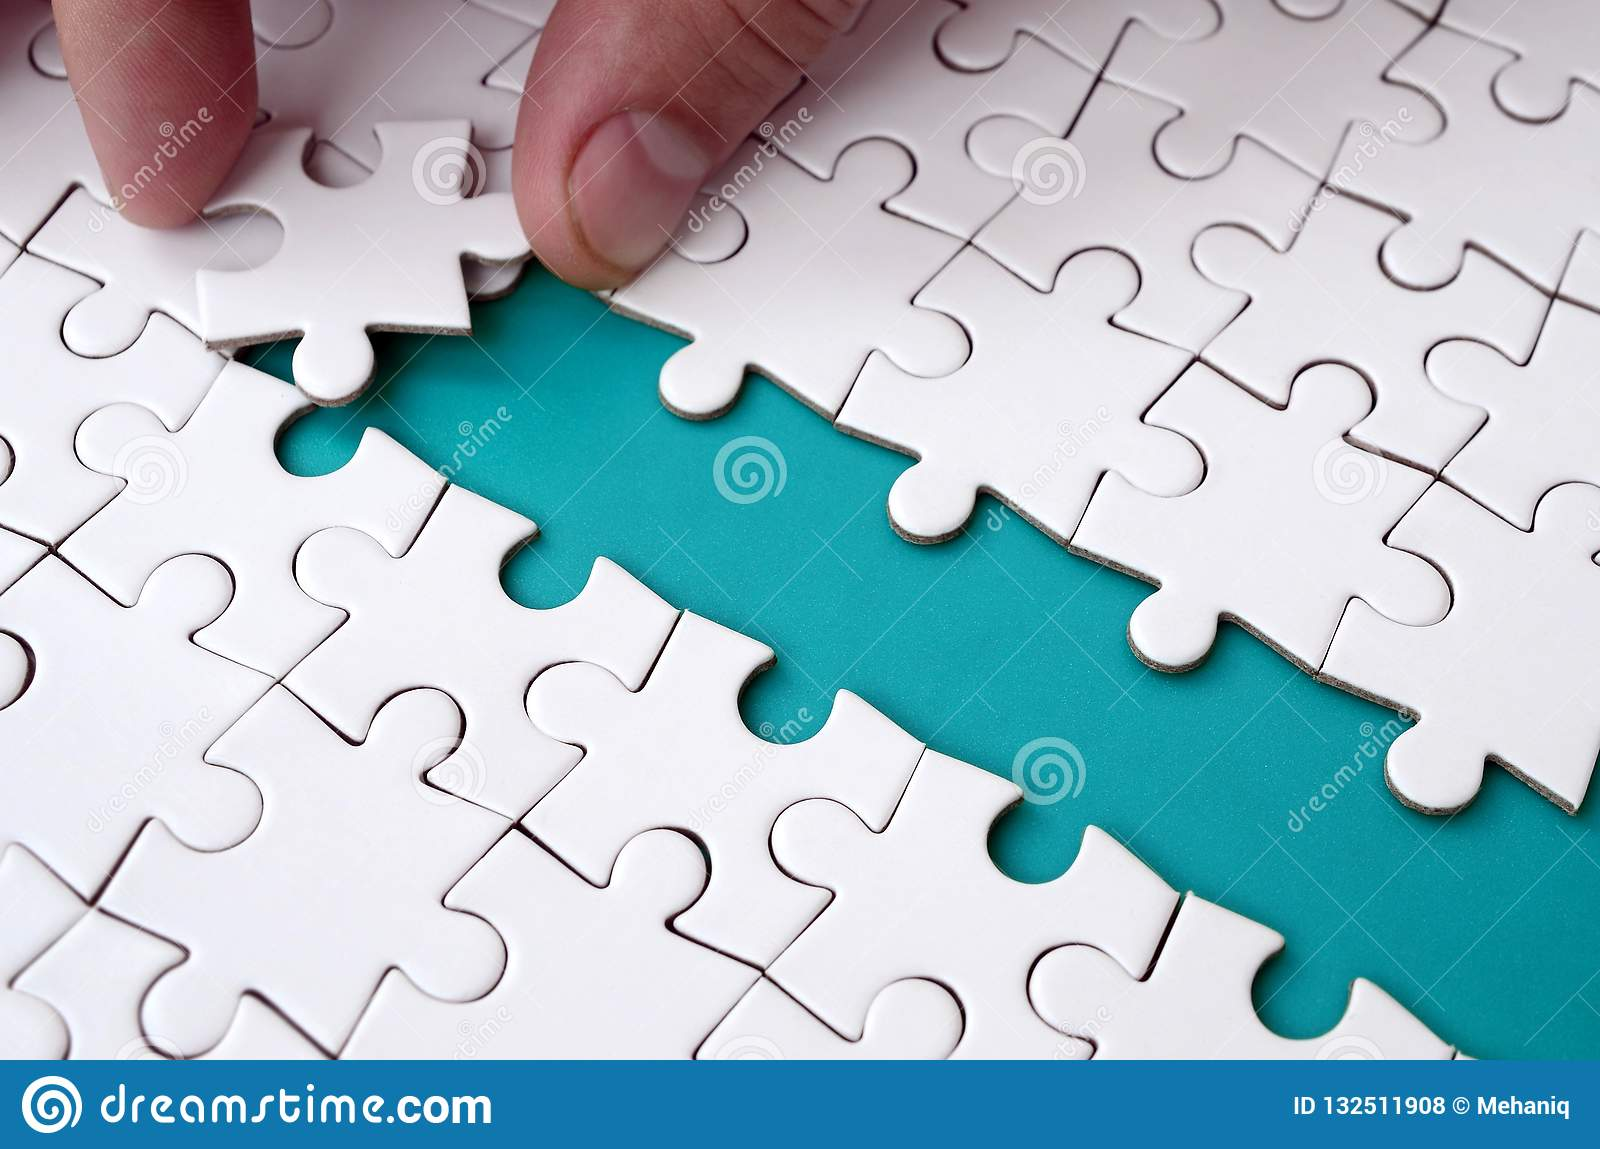 The human hand paves the way to the surface of the jigsaw puzzle, forming a blue space. The concept of overcoming the difficulties